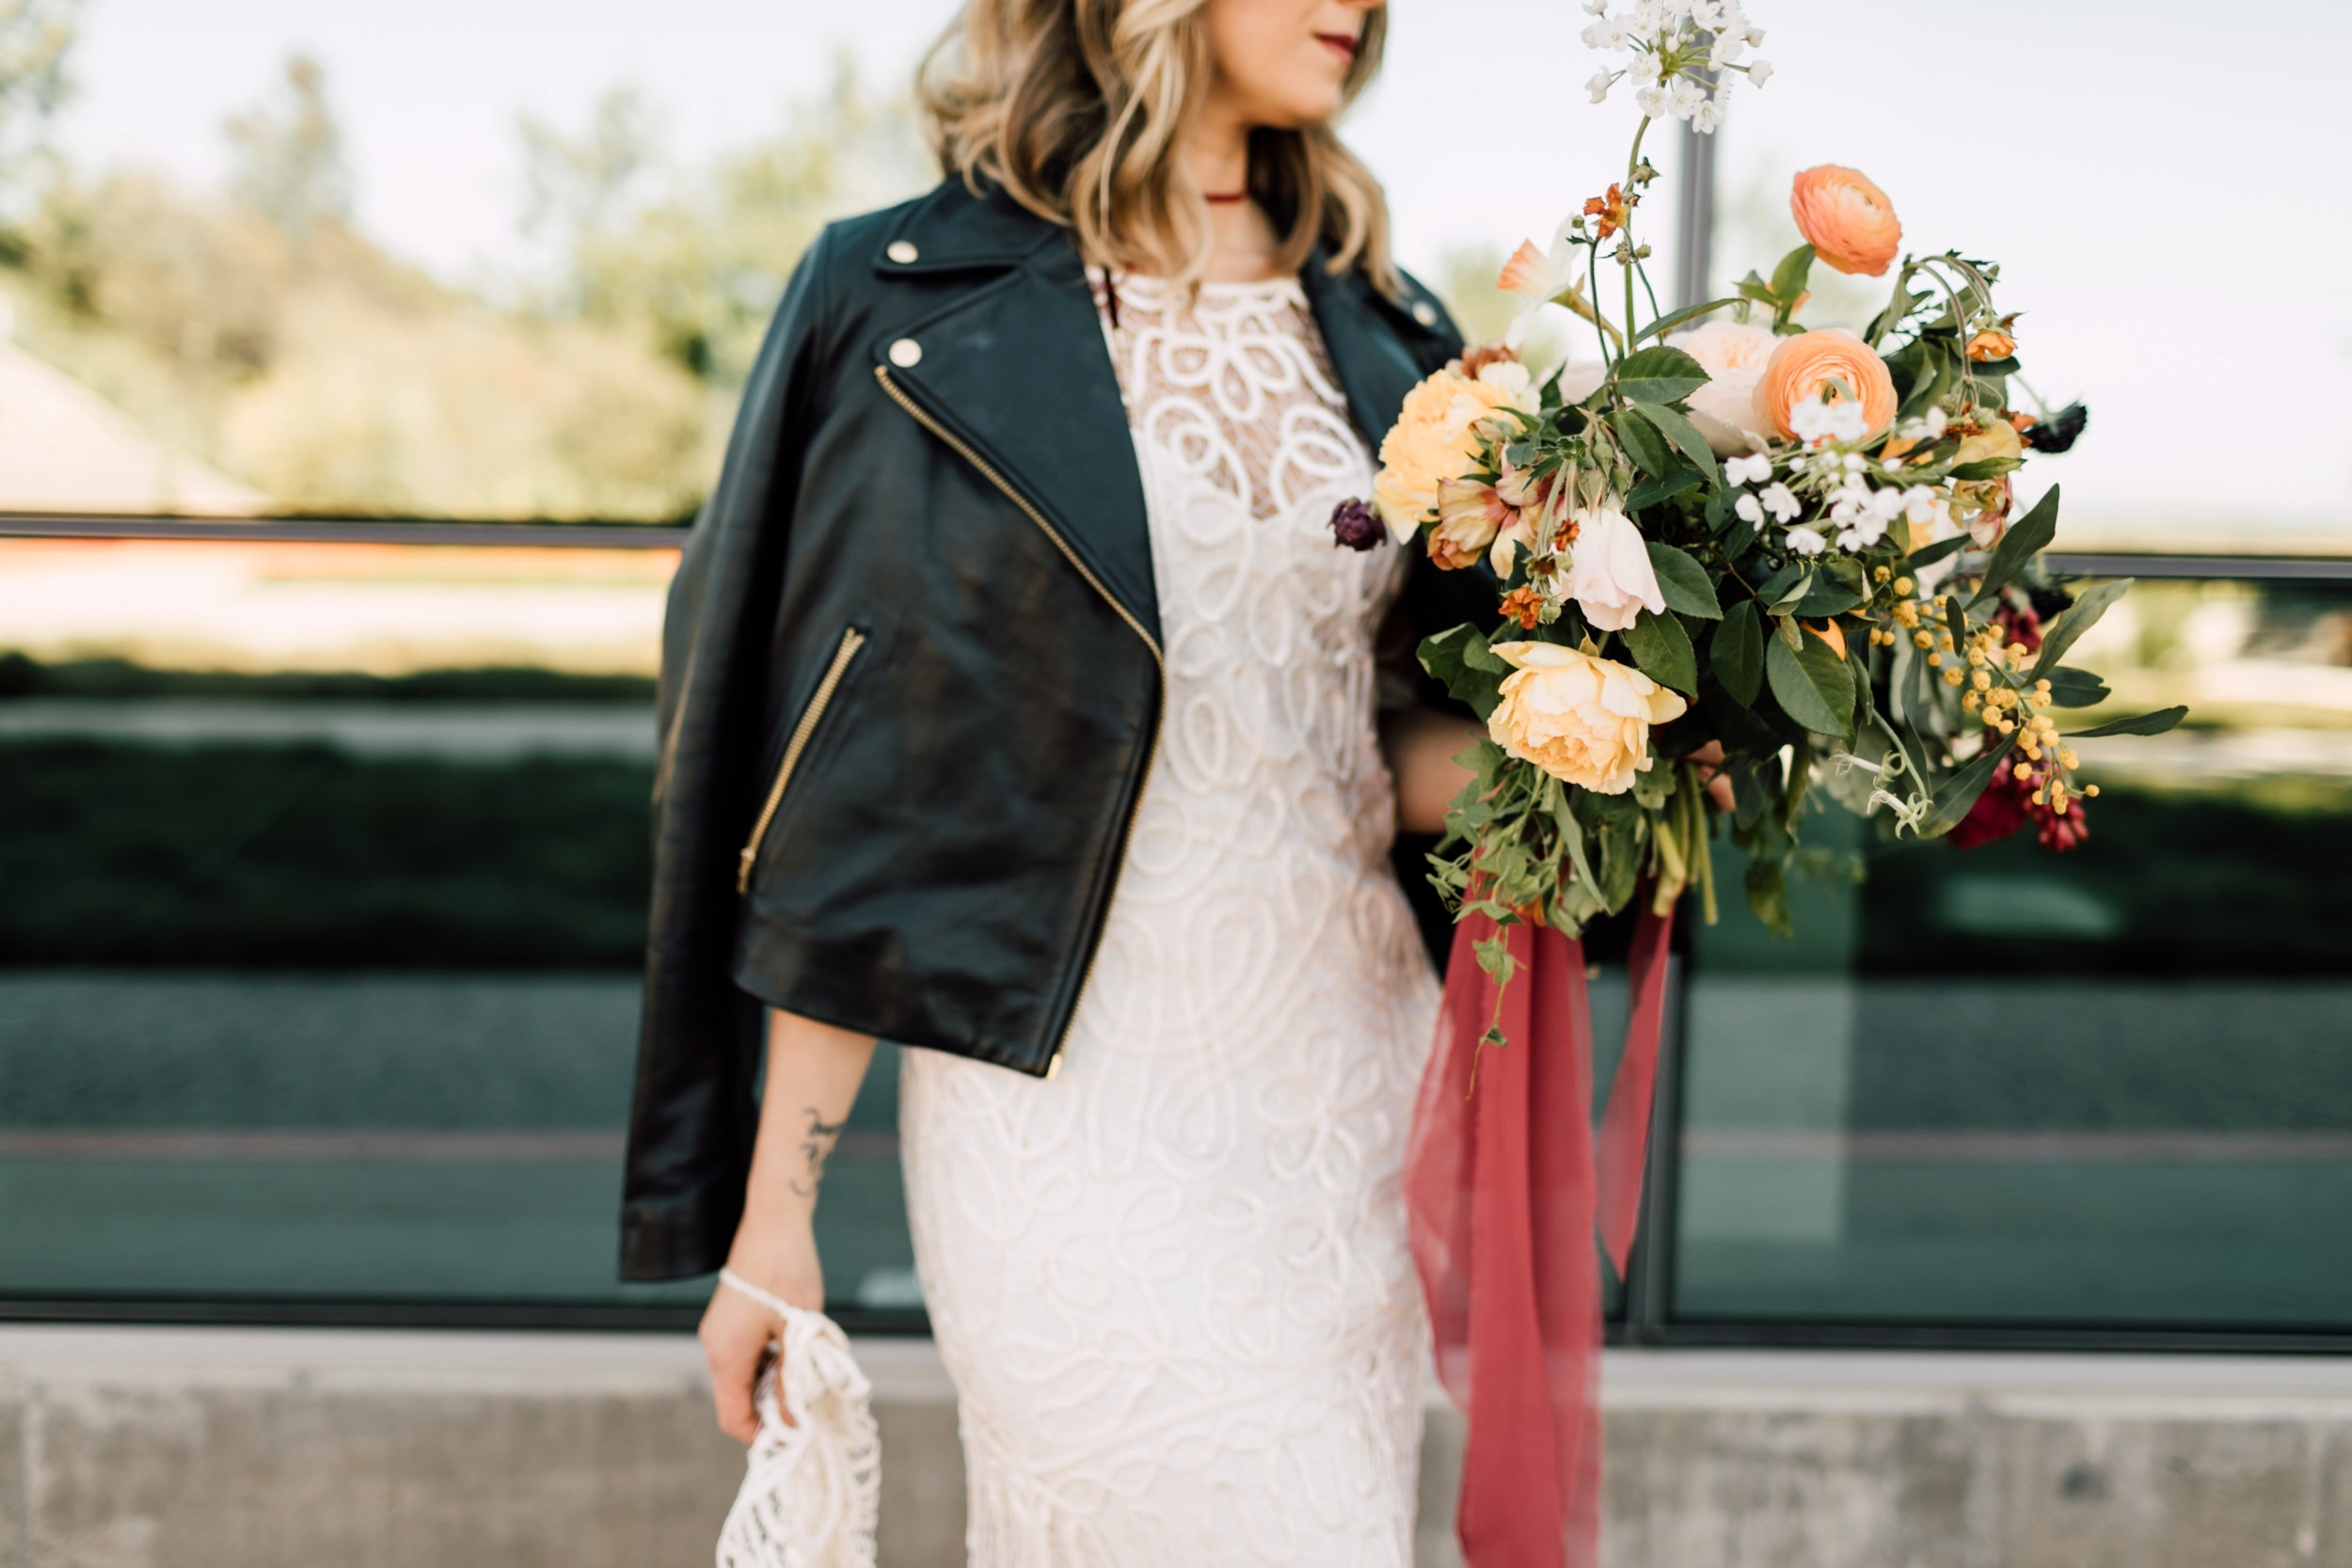 Bride wearing a dress with leather jacket holding a bouquet